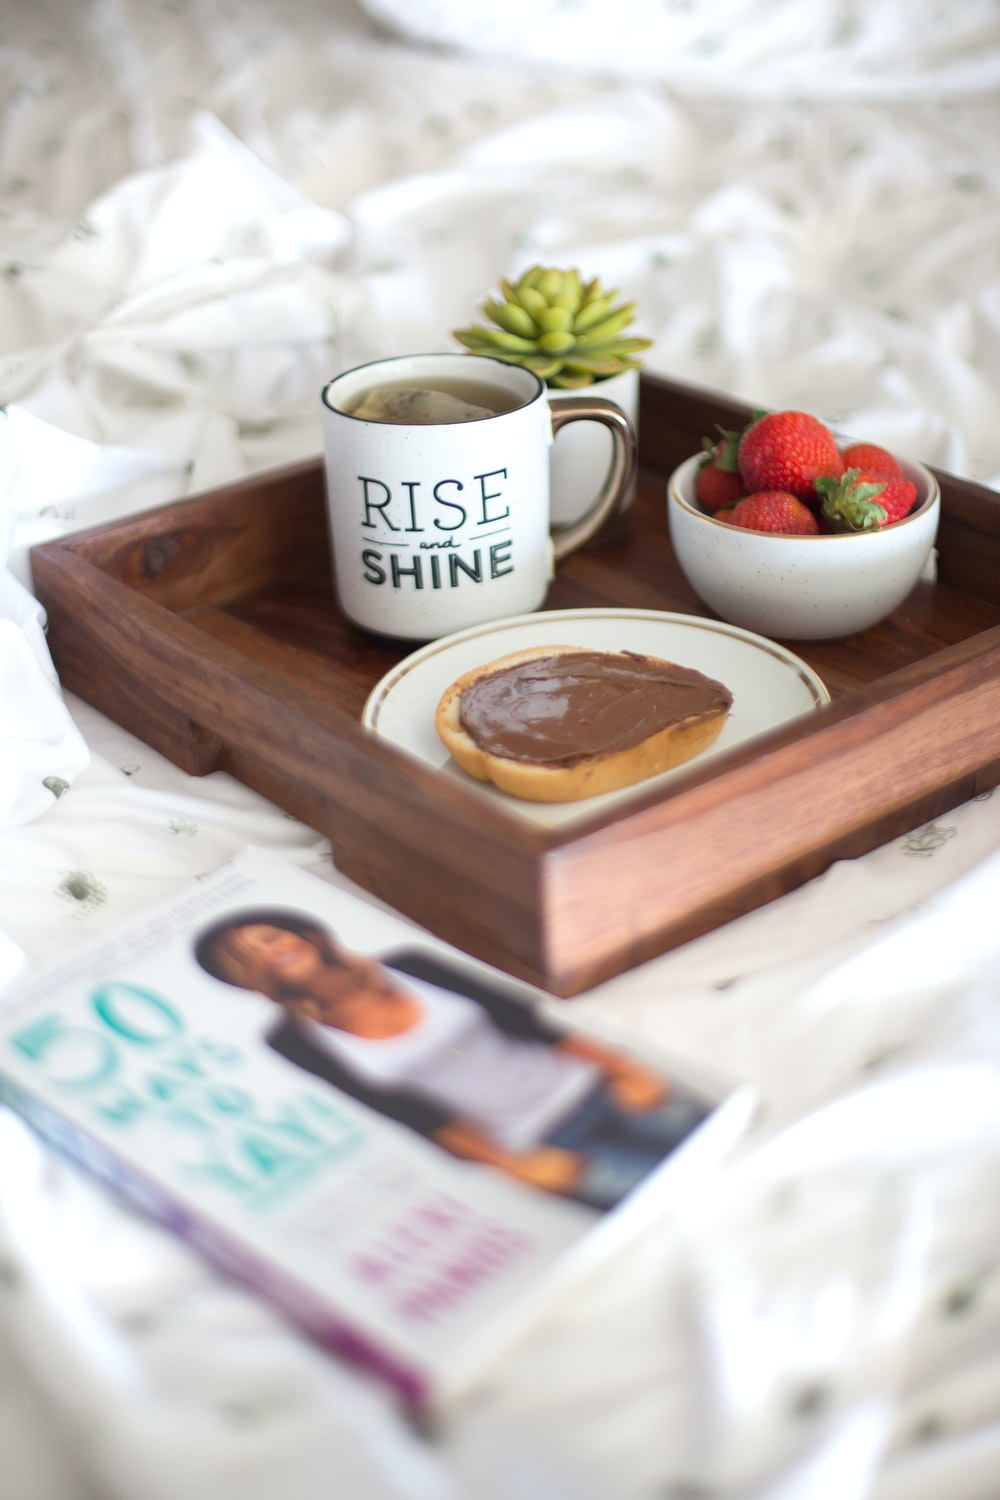 white Rise Shine ceramic mug on brown table